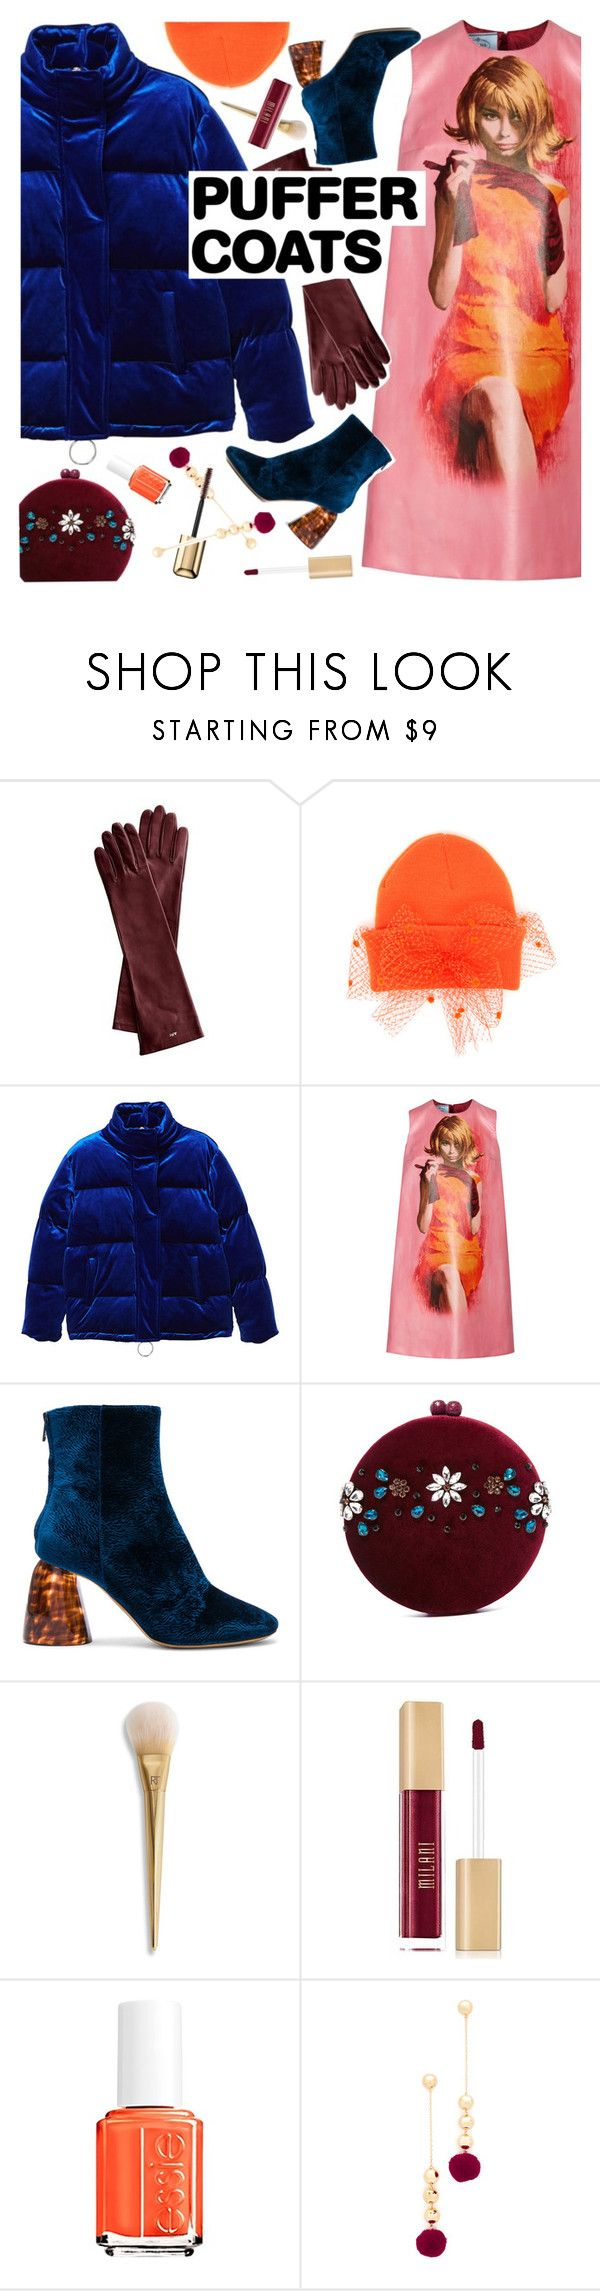 """""""Stay Warm: Puffer Coats"""" by ladysnape ❤ liked on Polyvore featuring Silver Spoon Attire, MANGO, Prada, E L L E R Y, Serpui, Essie, Elizabeth and James, Guerlain, Winter and puffercoats"""